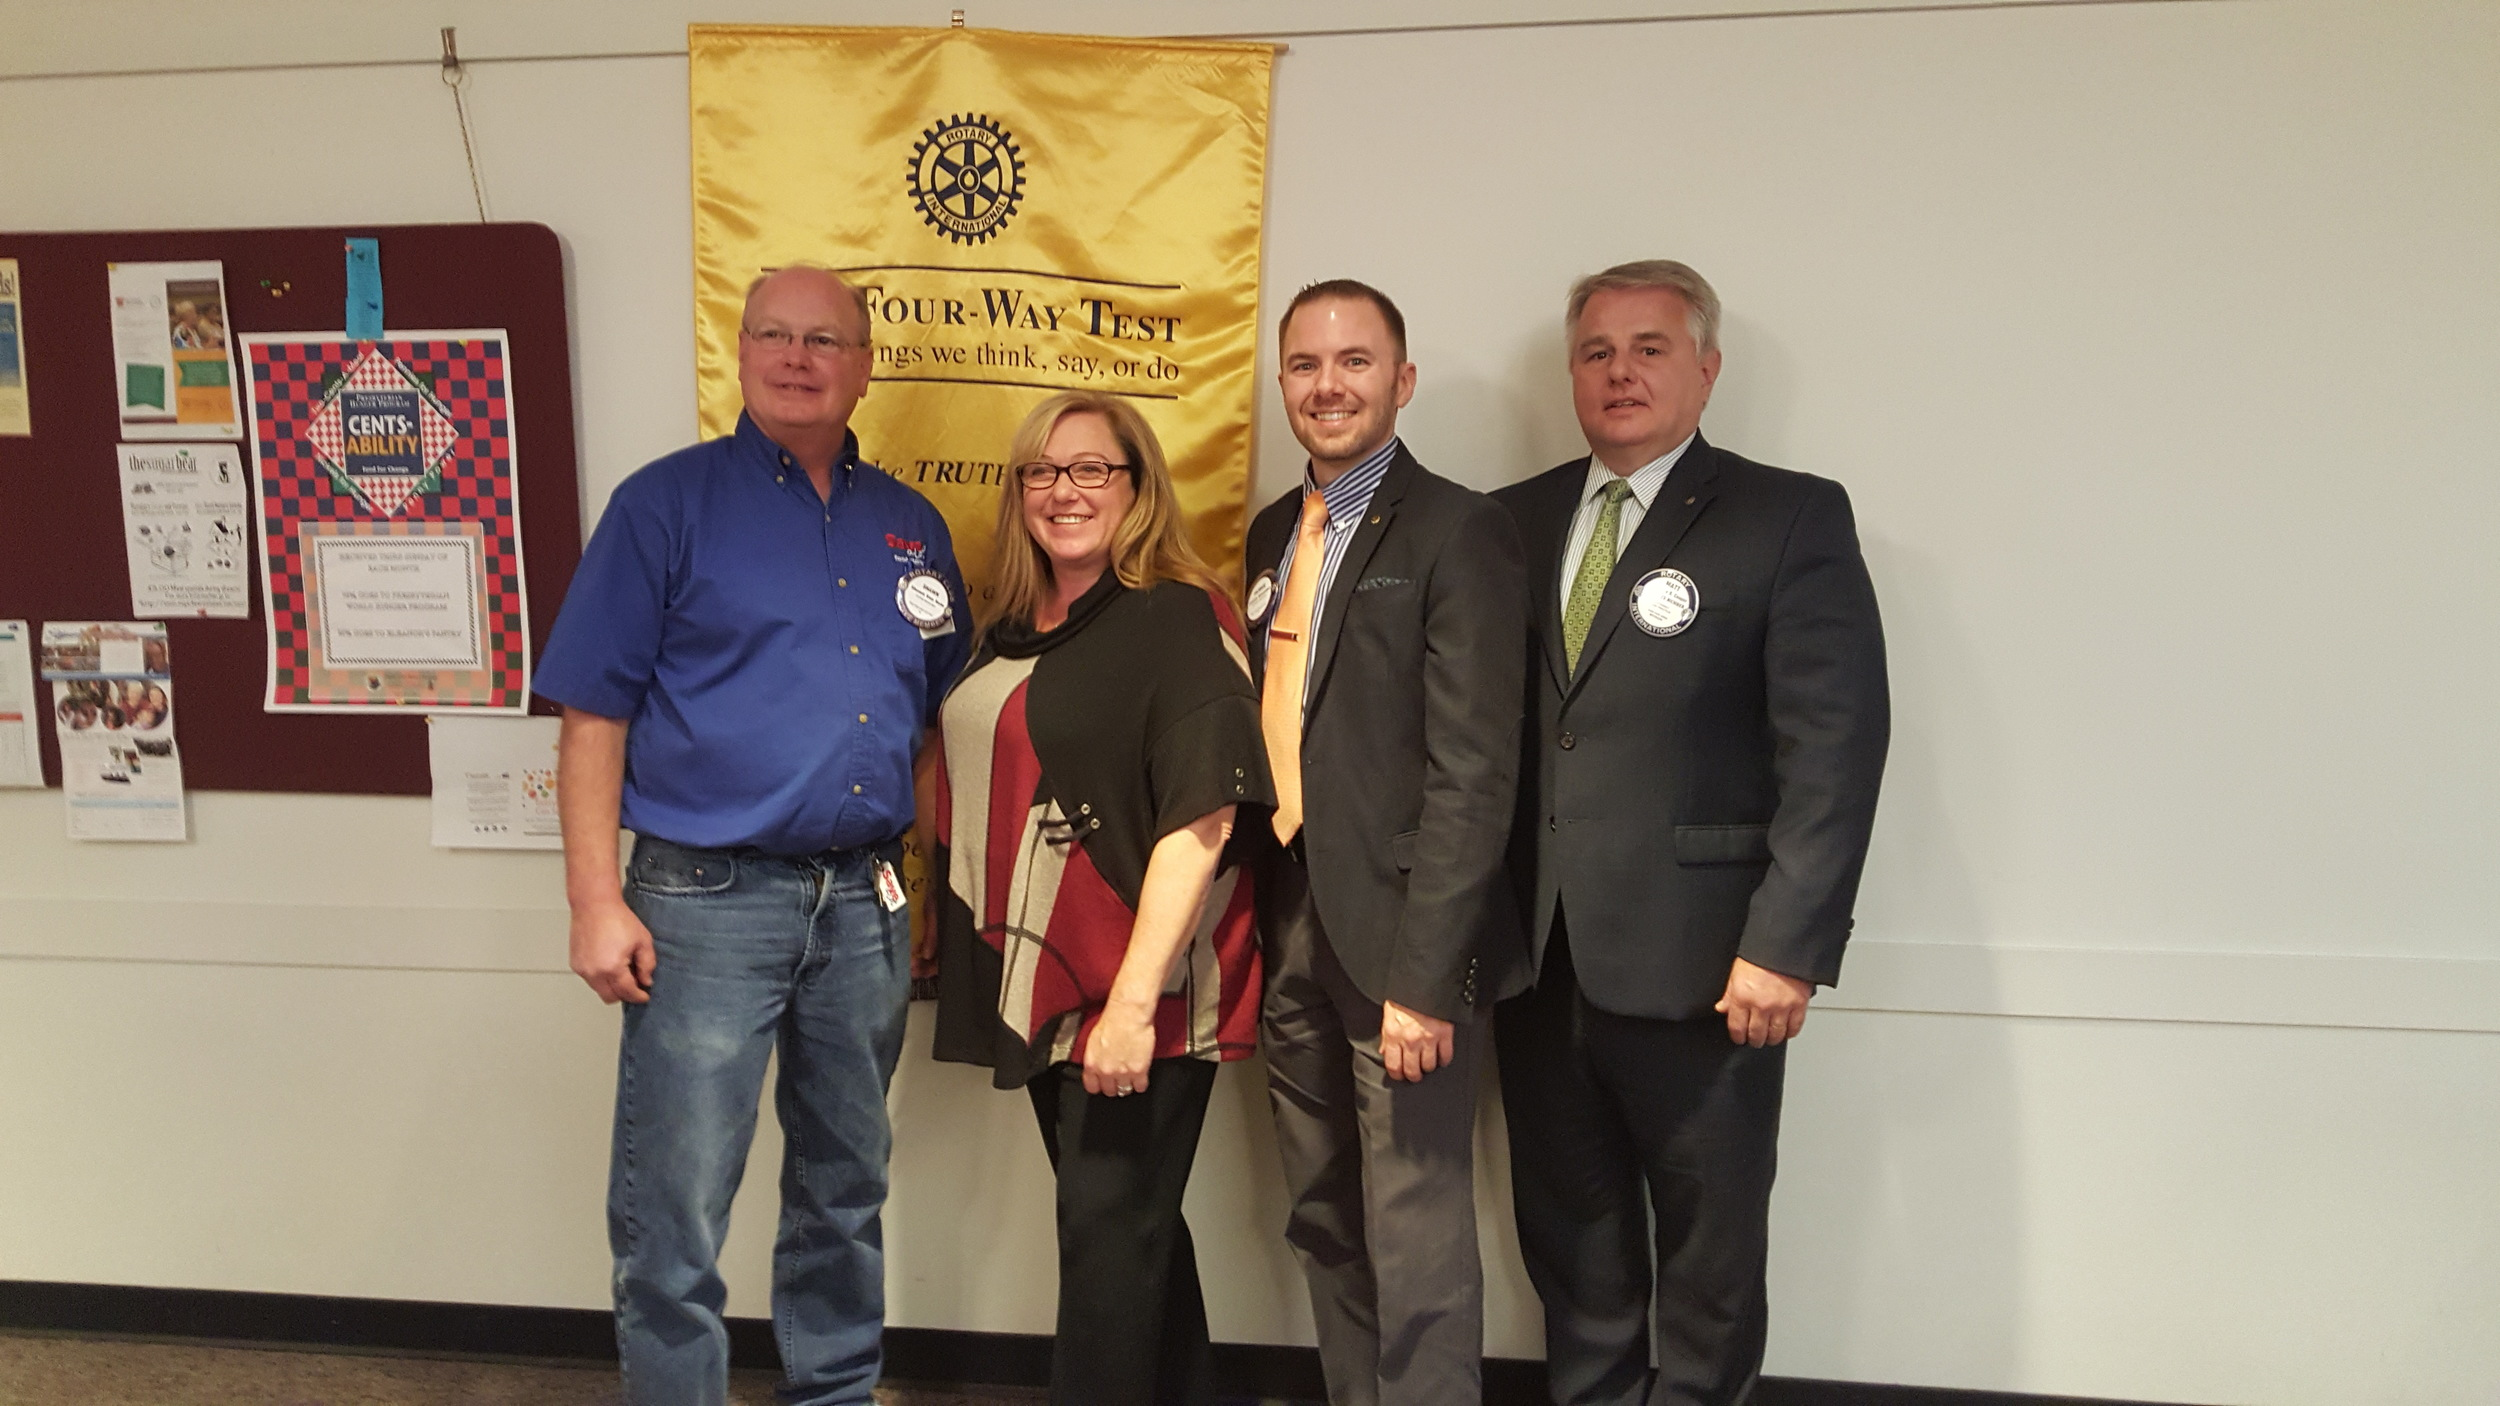 My induction into the Paw Paw Rotary Club